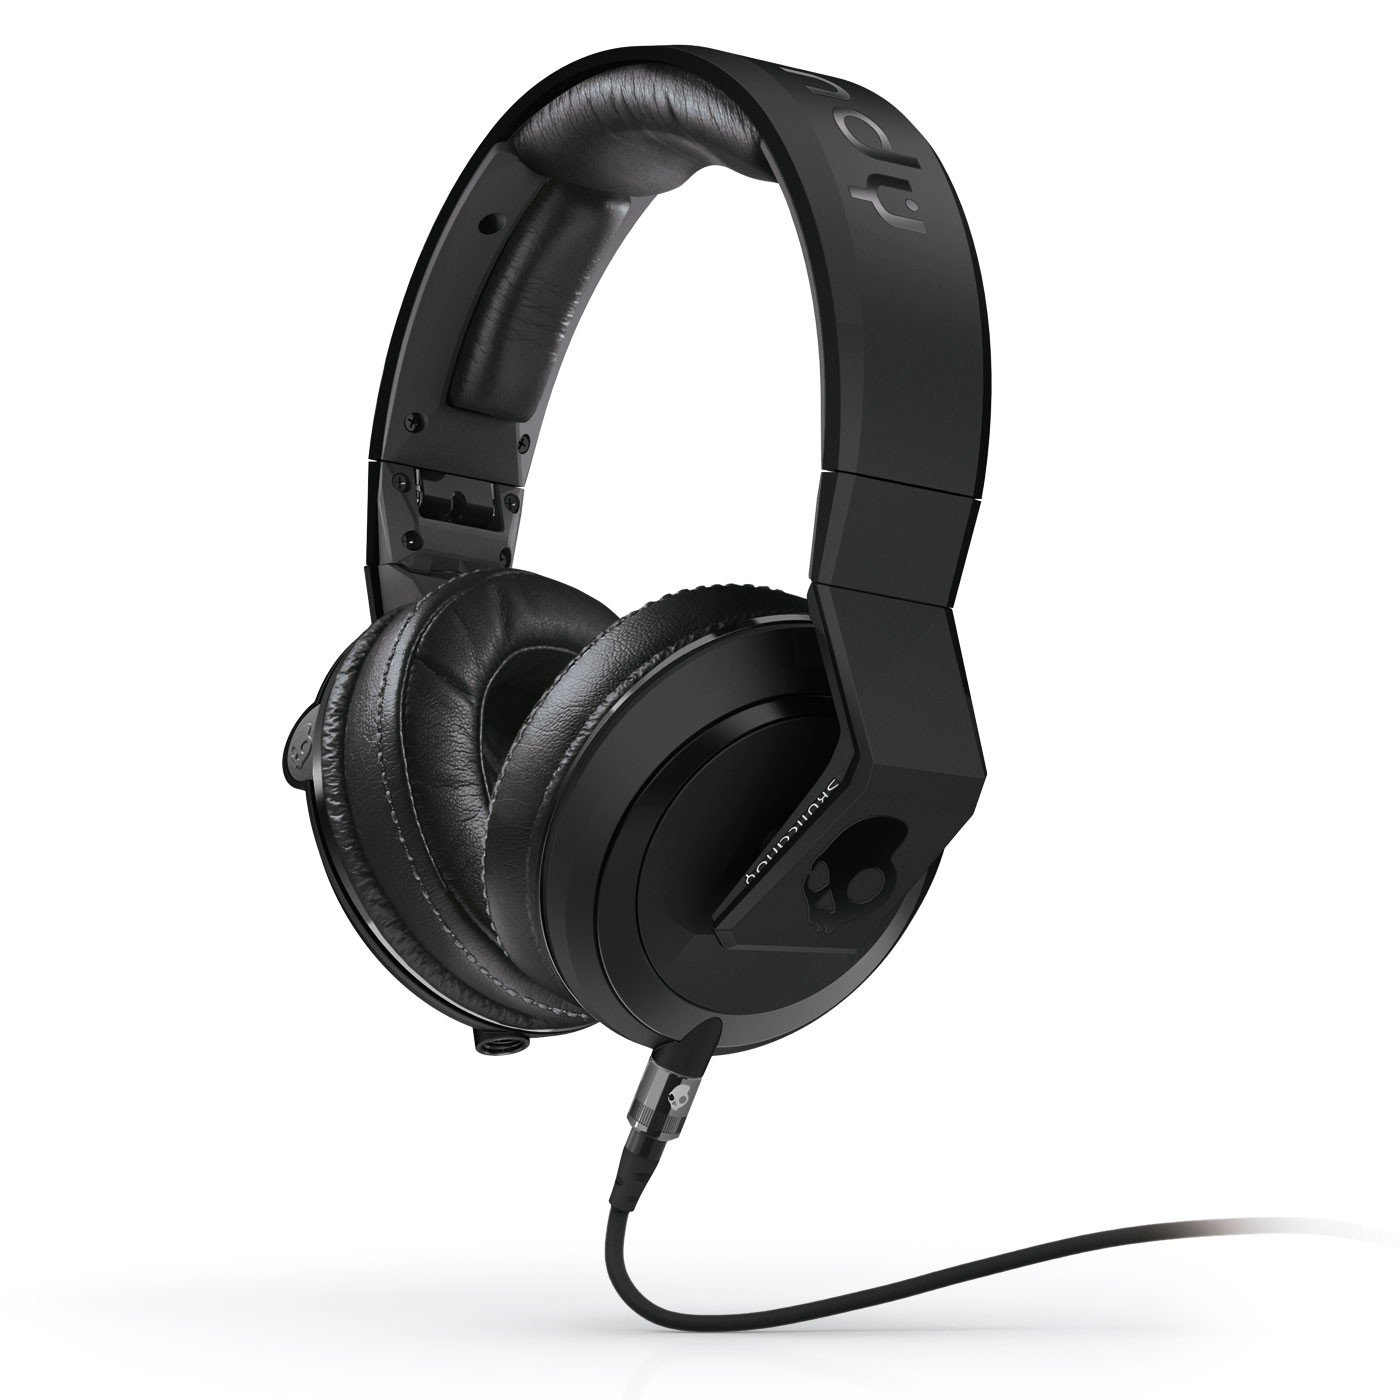 Skullcandy Mix Master Headphones with DJ Capabilities and 3 Button Mic, Matte Black by Skullcandy (Image #1)